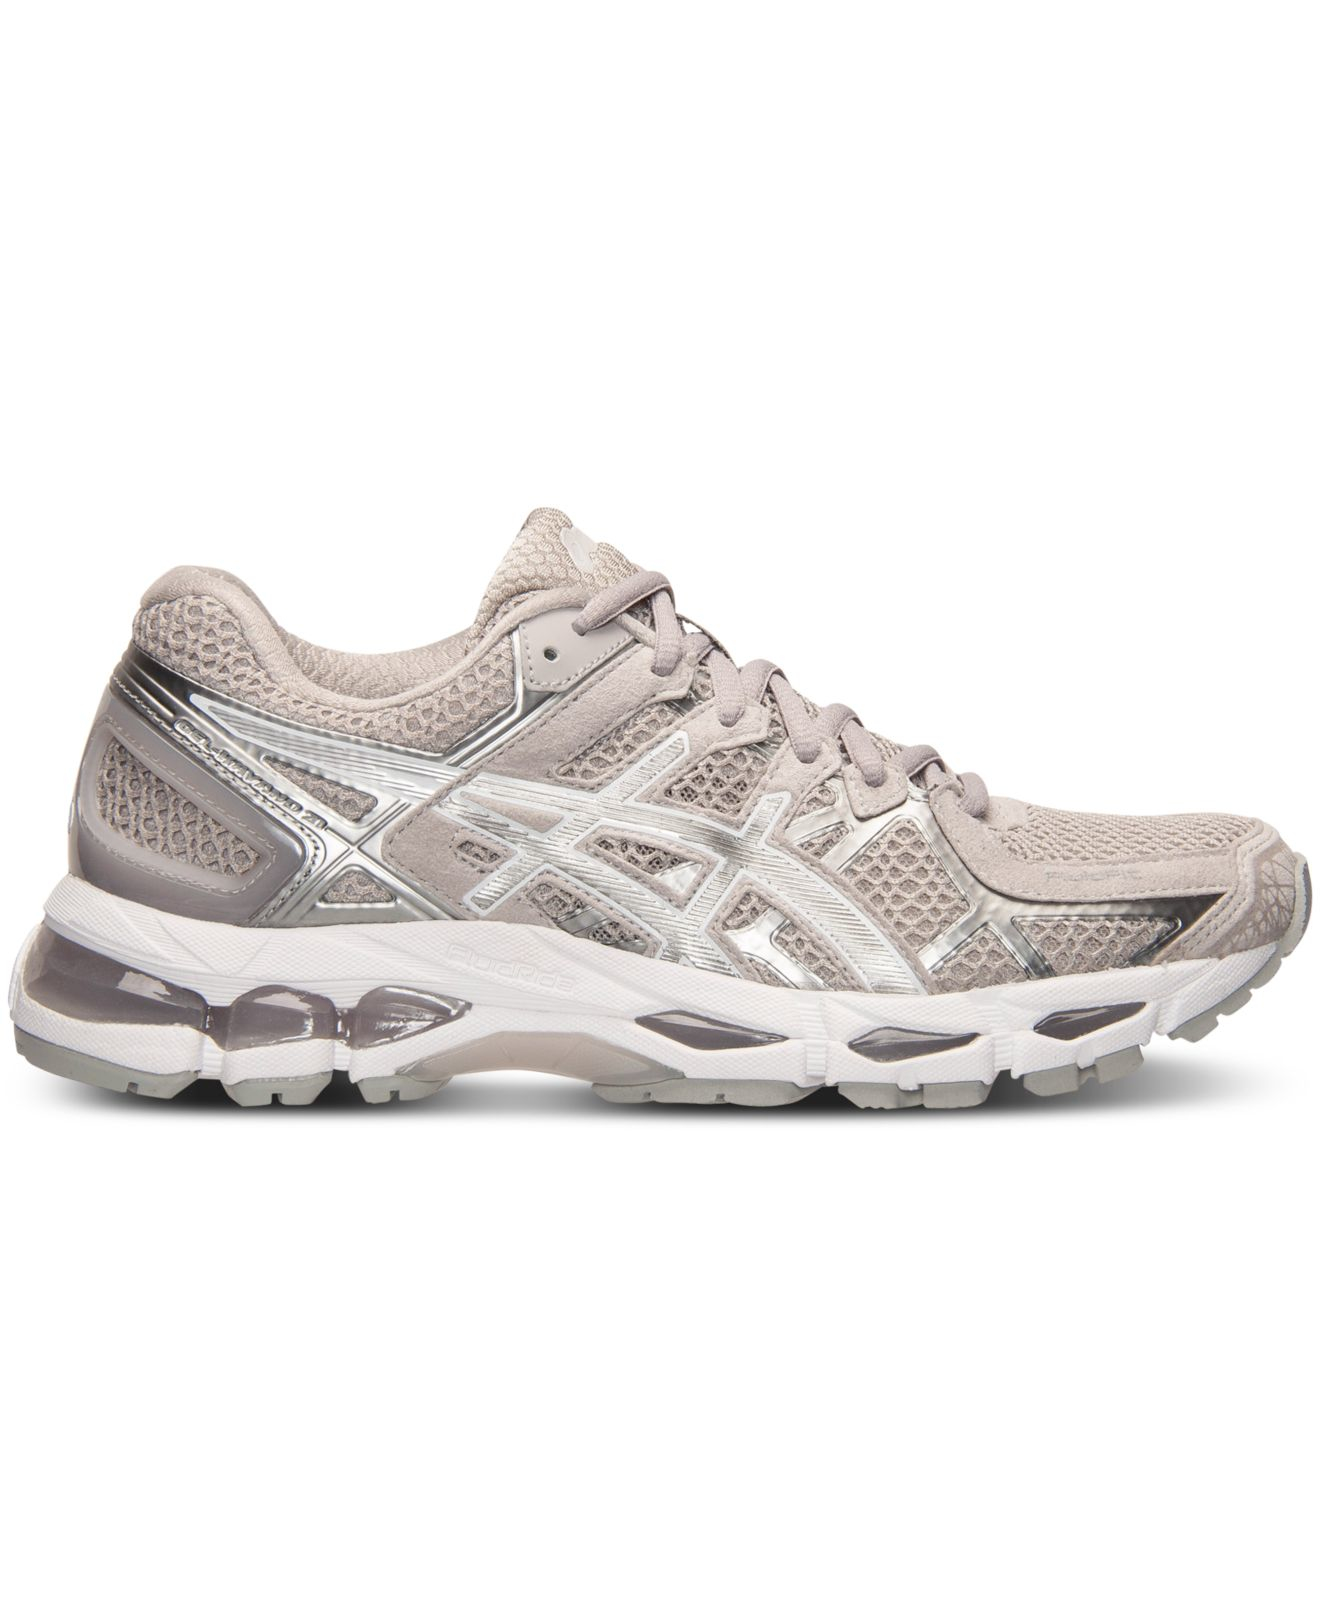 asics women 39 s gel kayano 21 running sneakers from finish line in white lyst. Black Bedroom Furniture Sets. Home Design Ideas